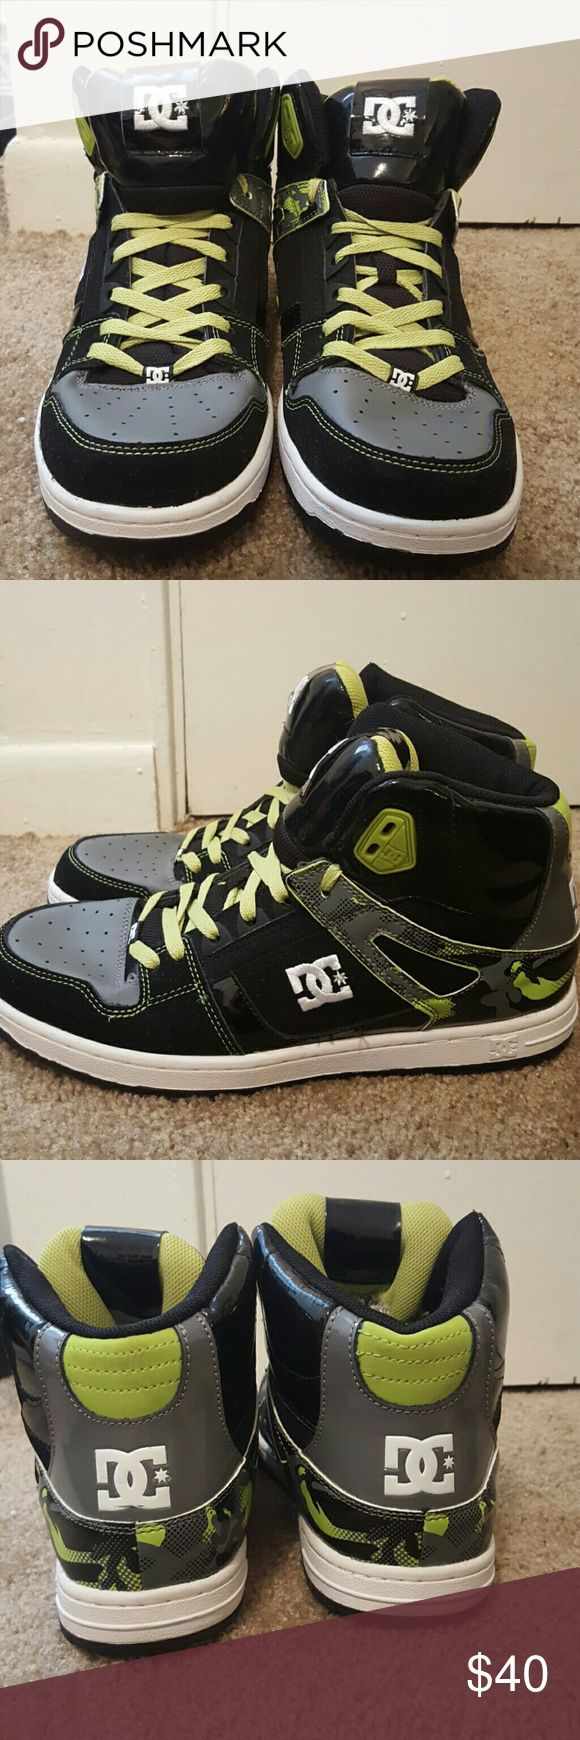 Green & black DC skate shoes never worn Green & black DC's, never worn! Perfect condition. DC Shoes Sneakers